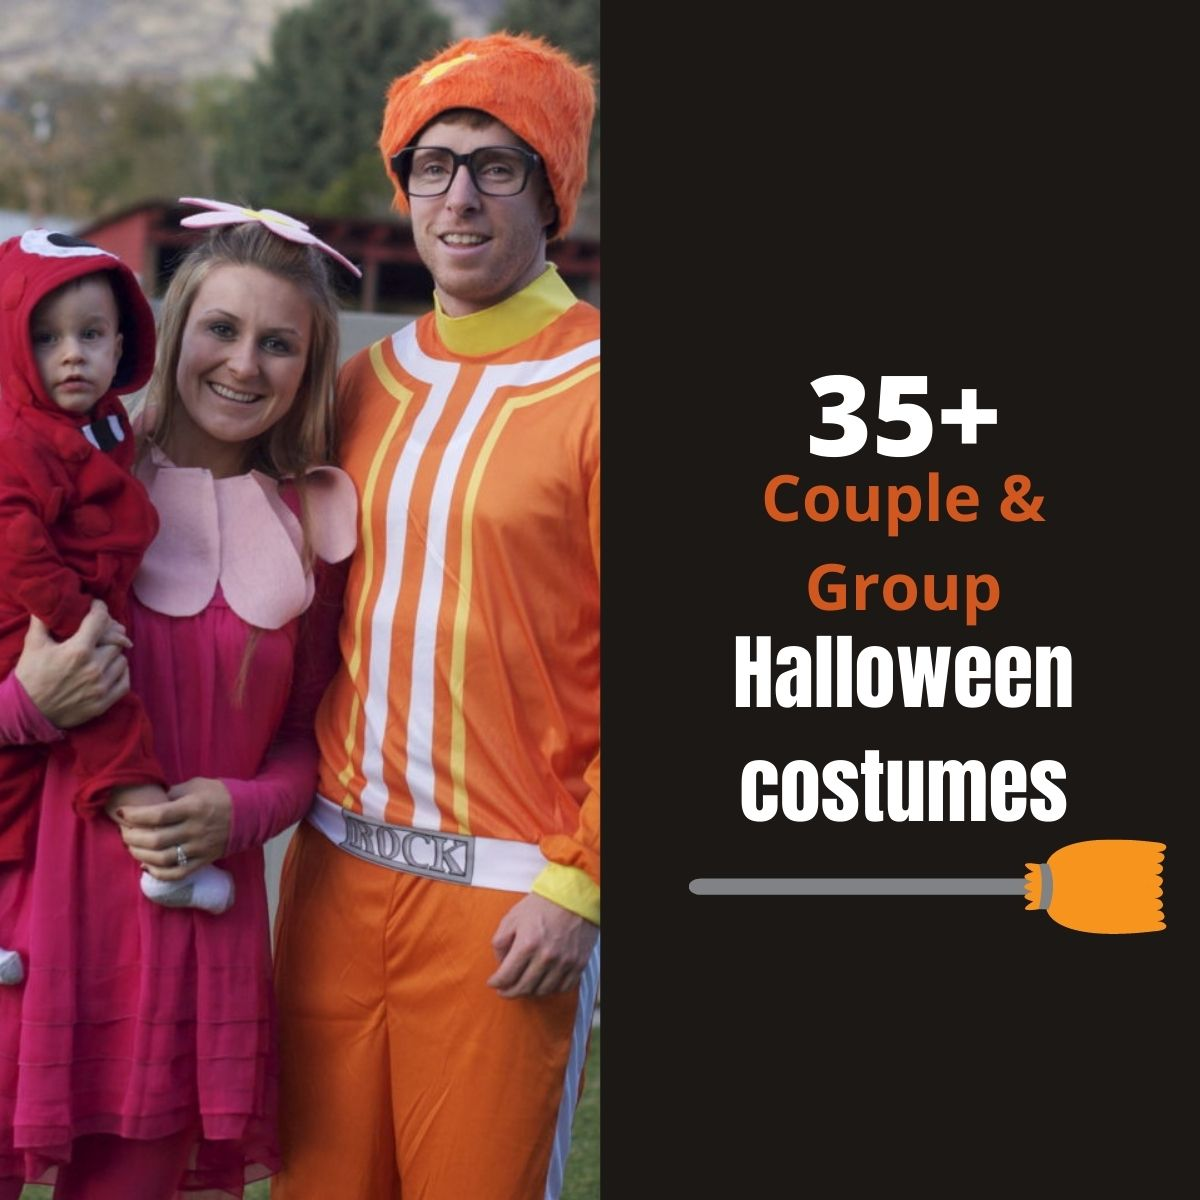 Couple and group costume ideas